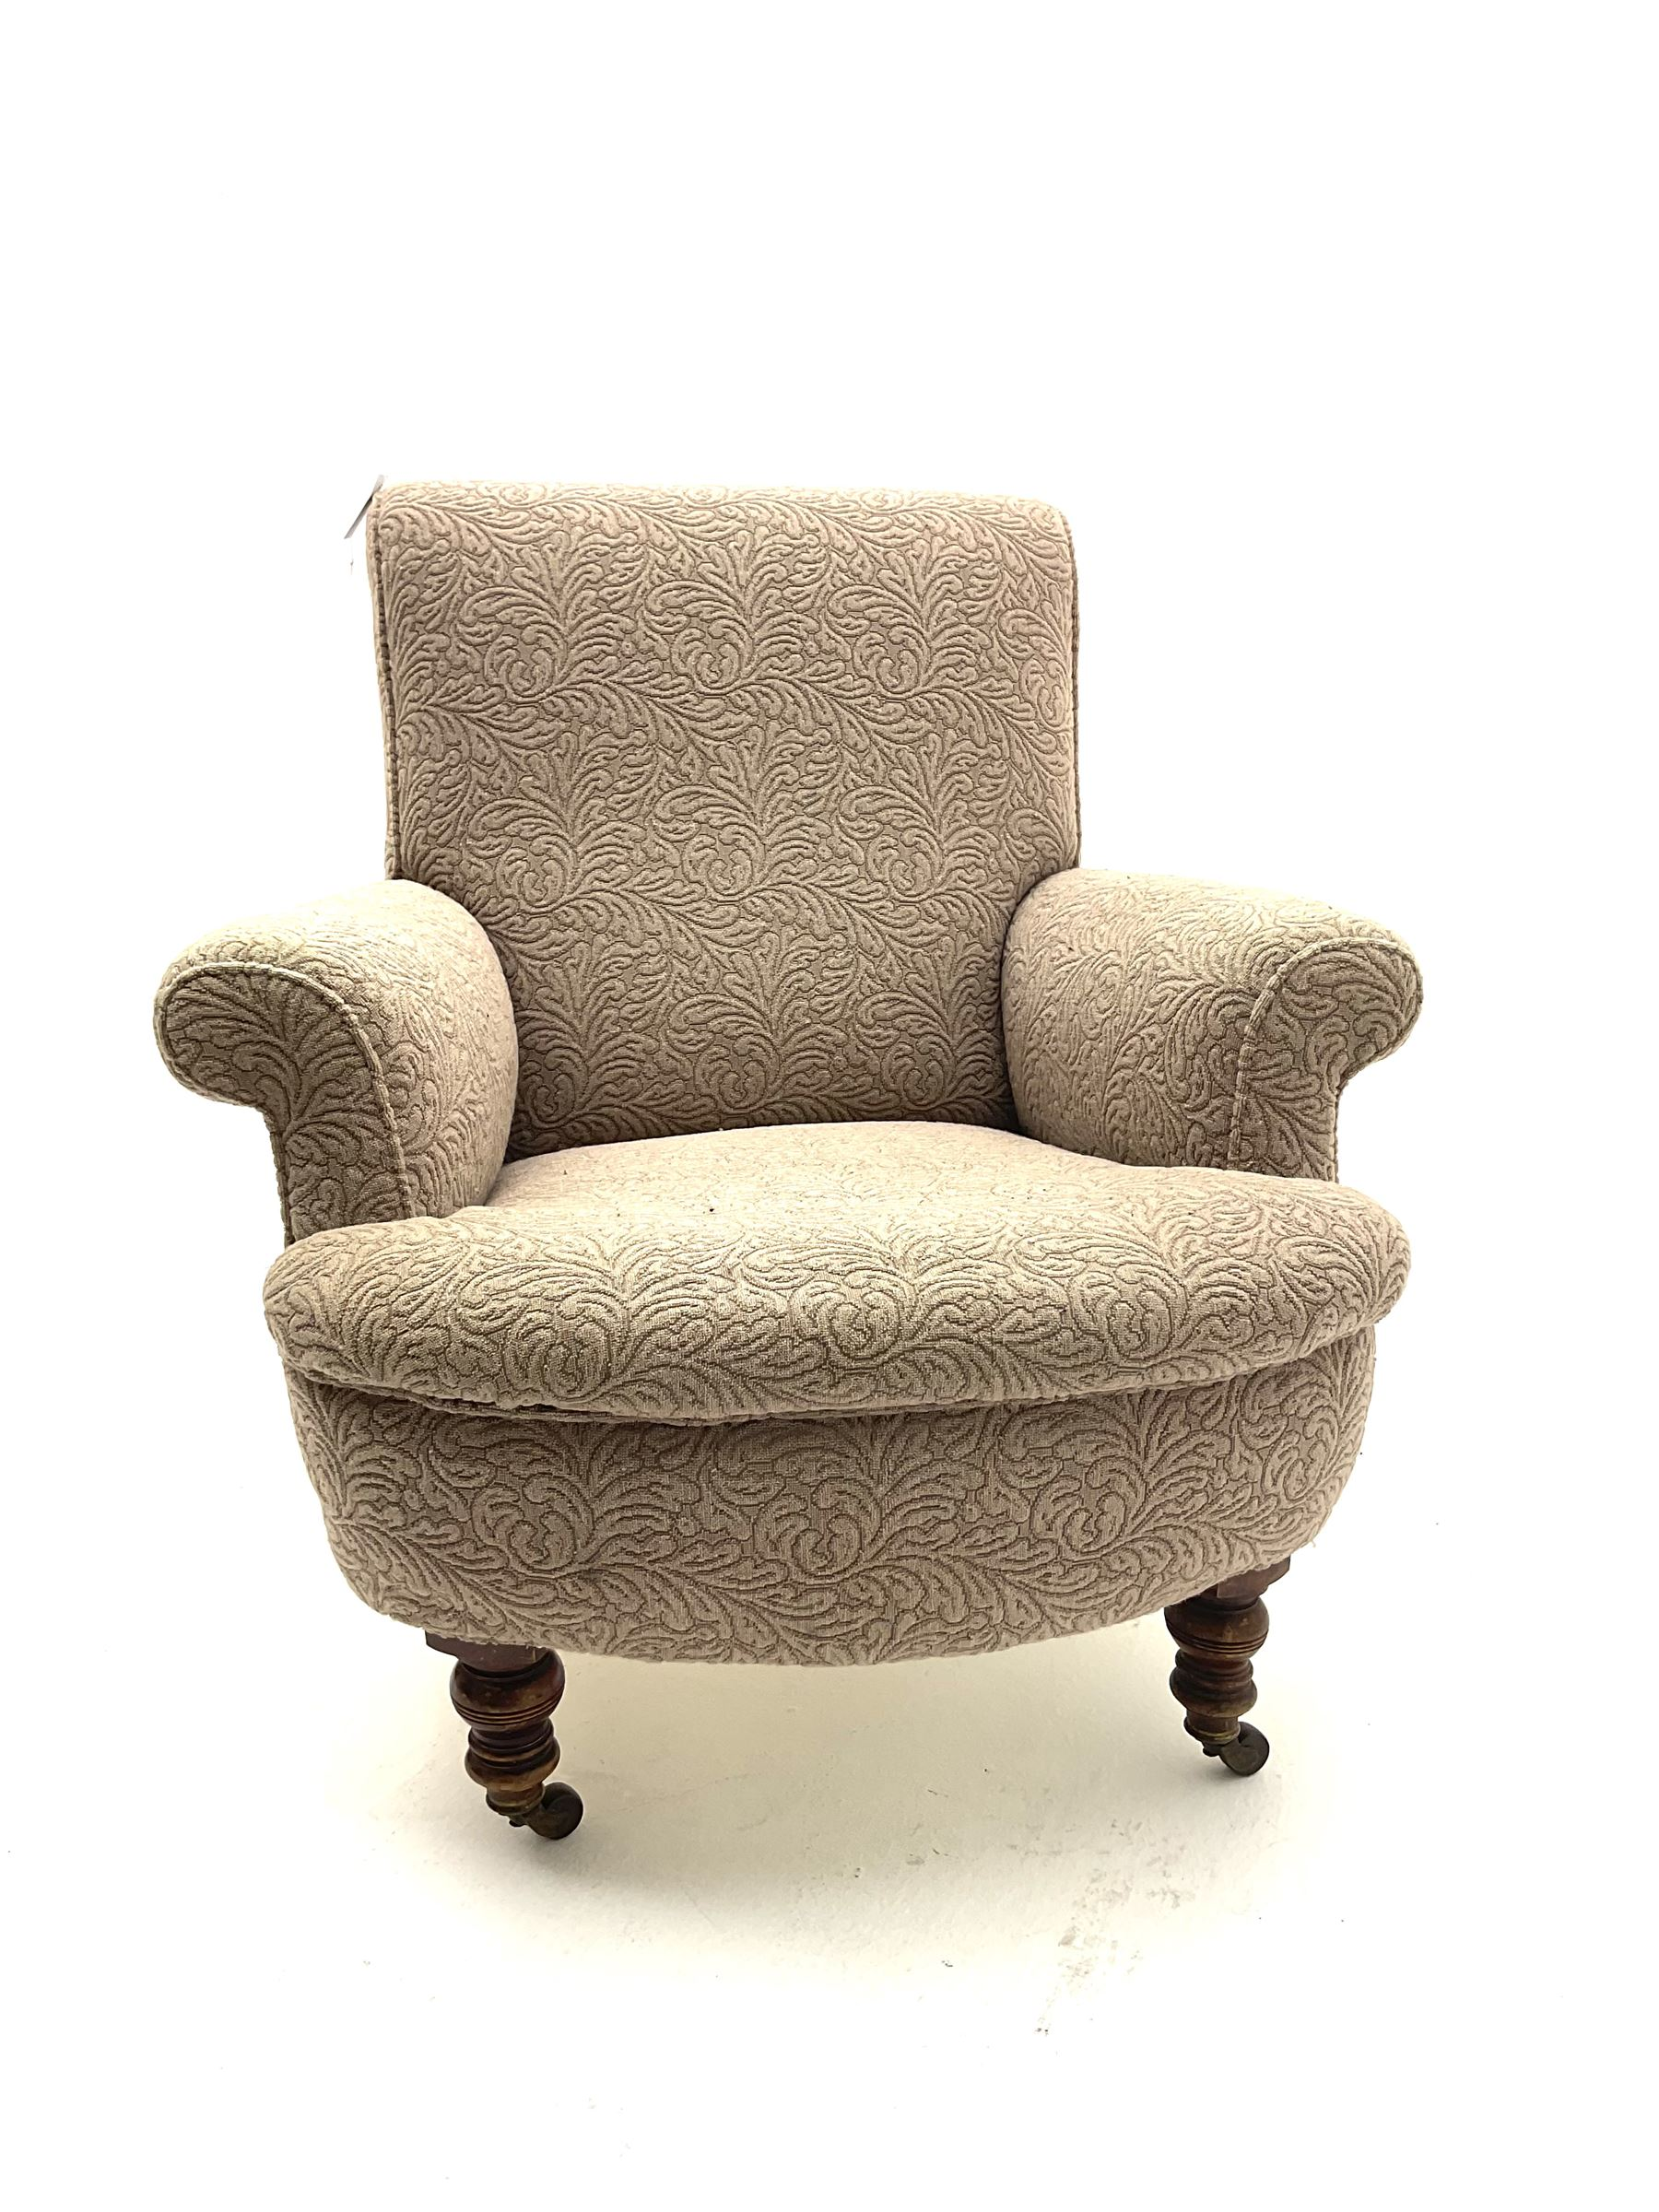 Late Victorian armchair - Image 2 of 2